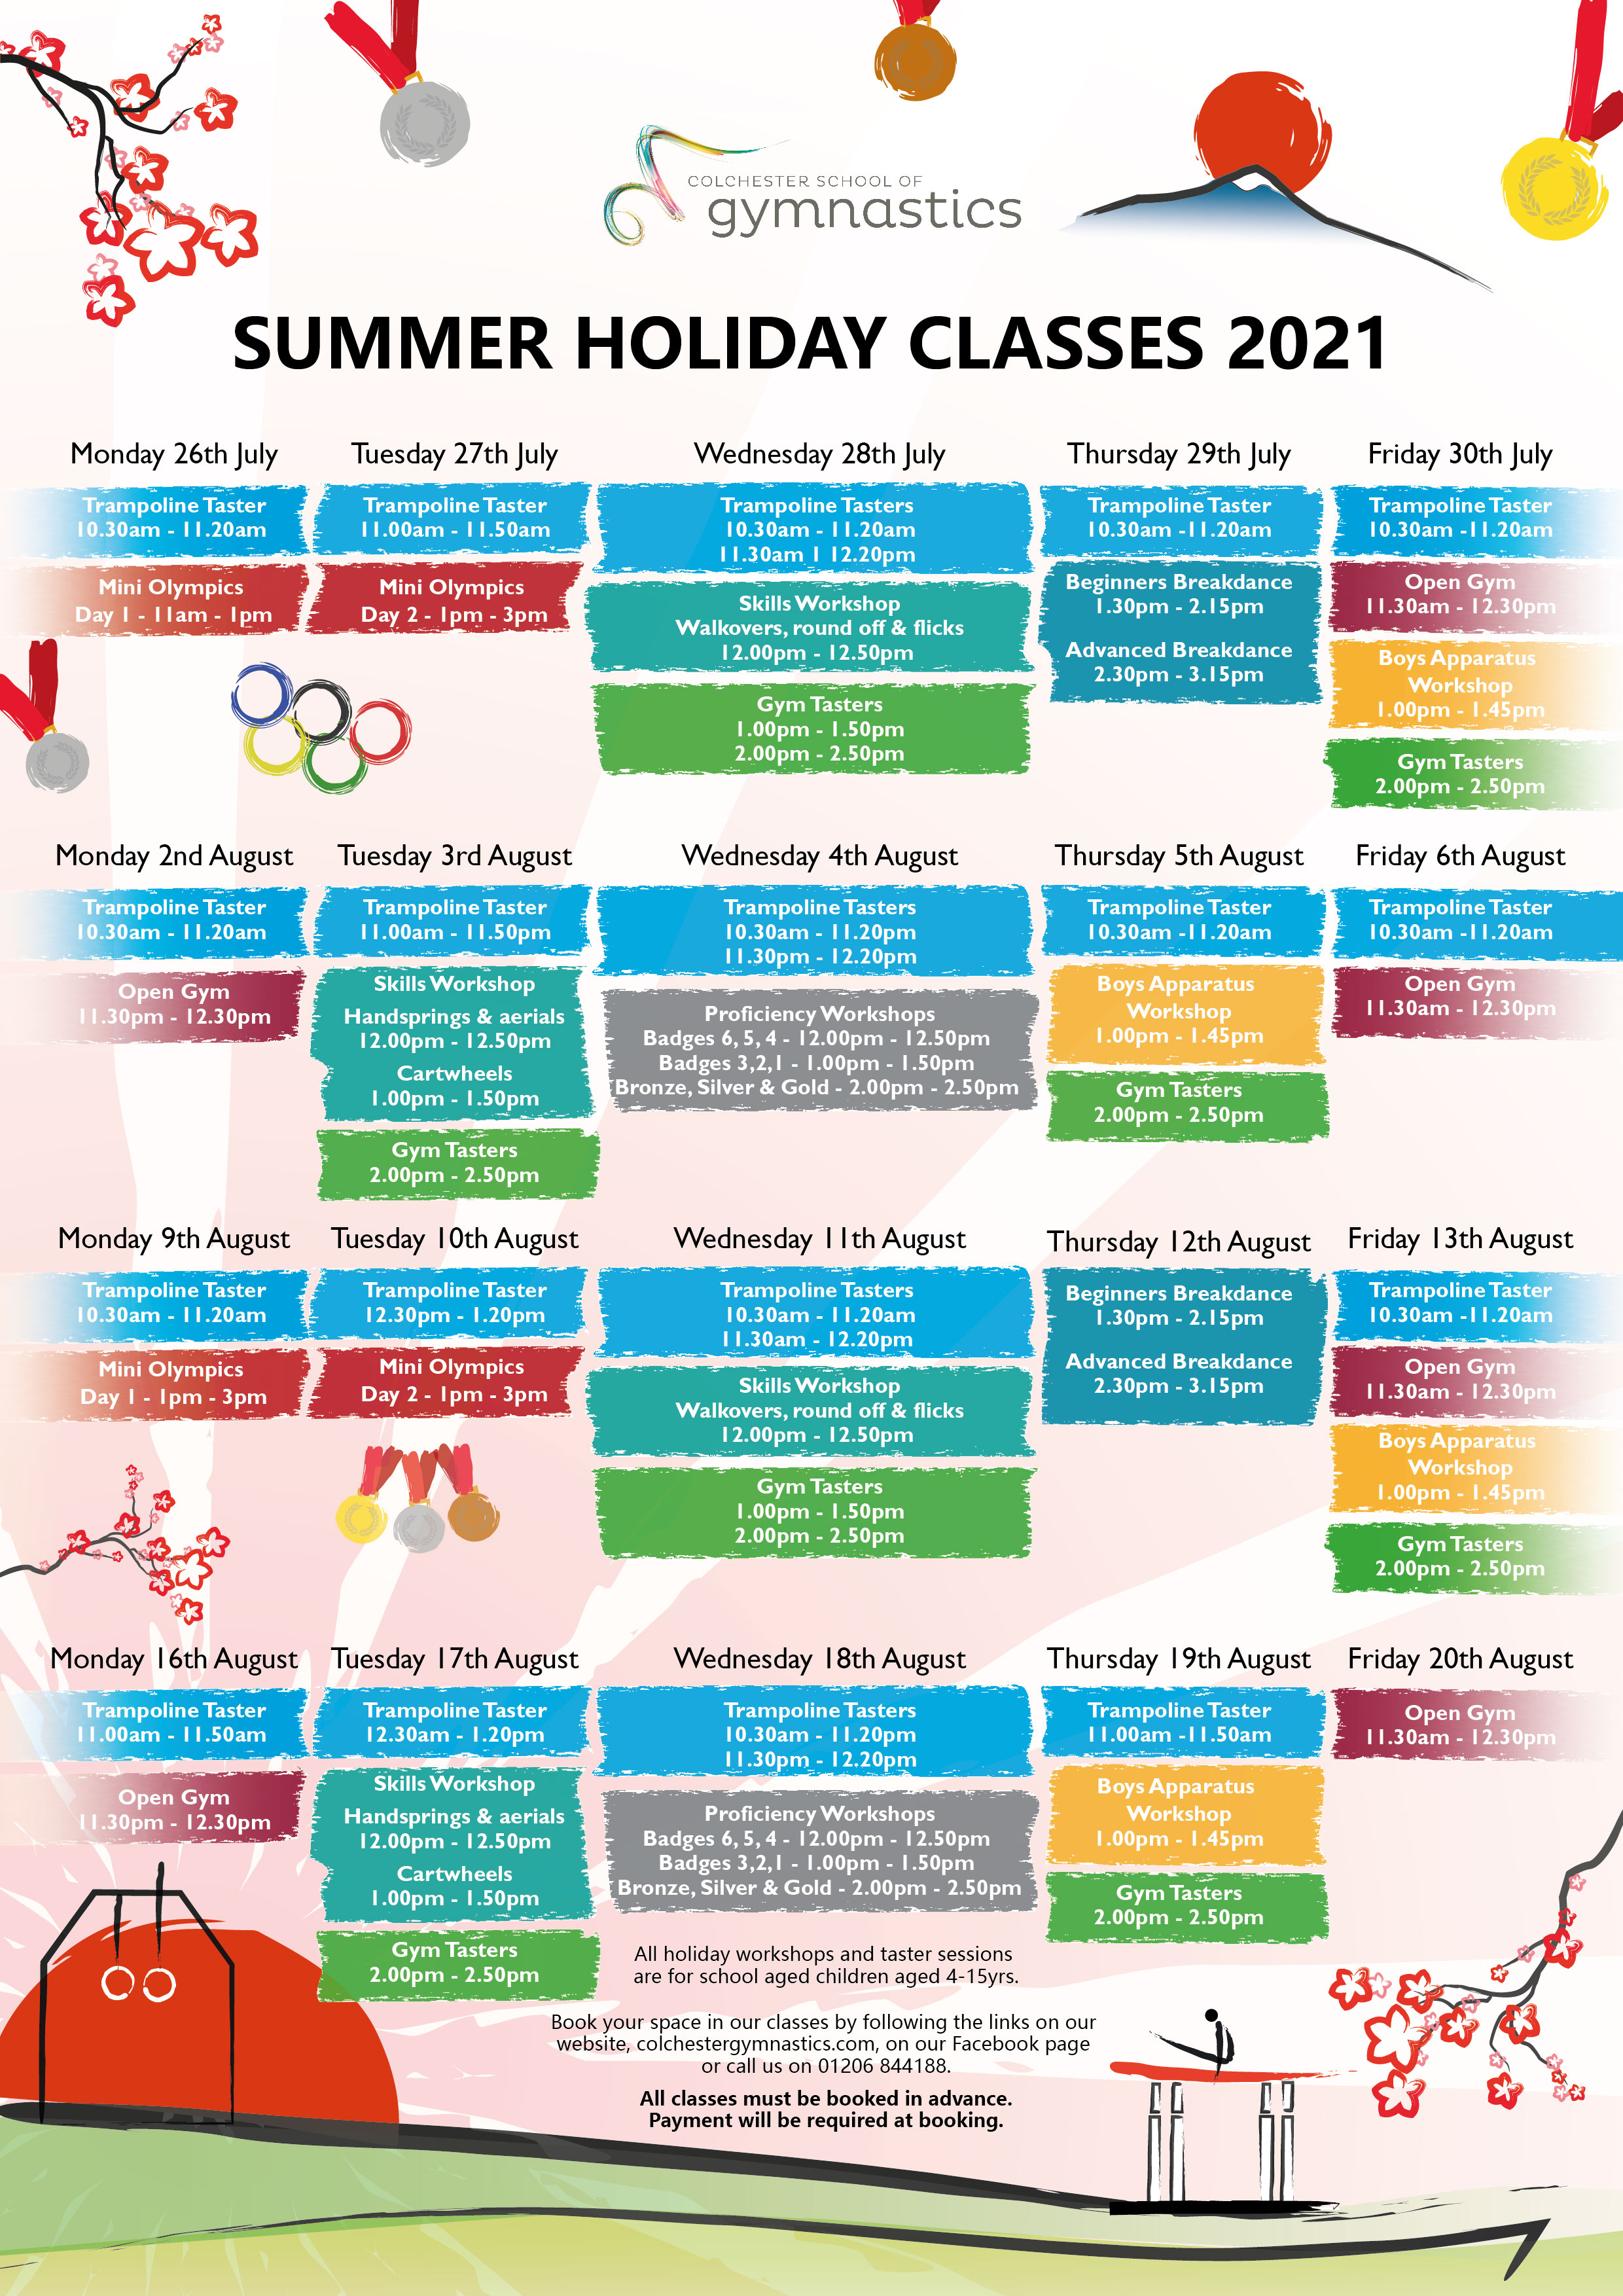 CSG Summer Holiday Poster 2021 - FINAL-02